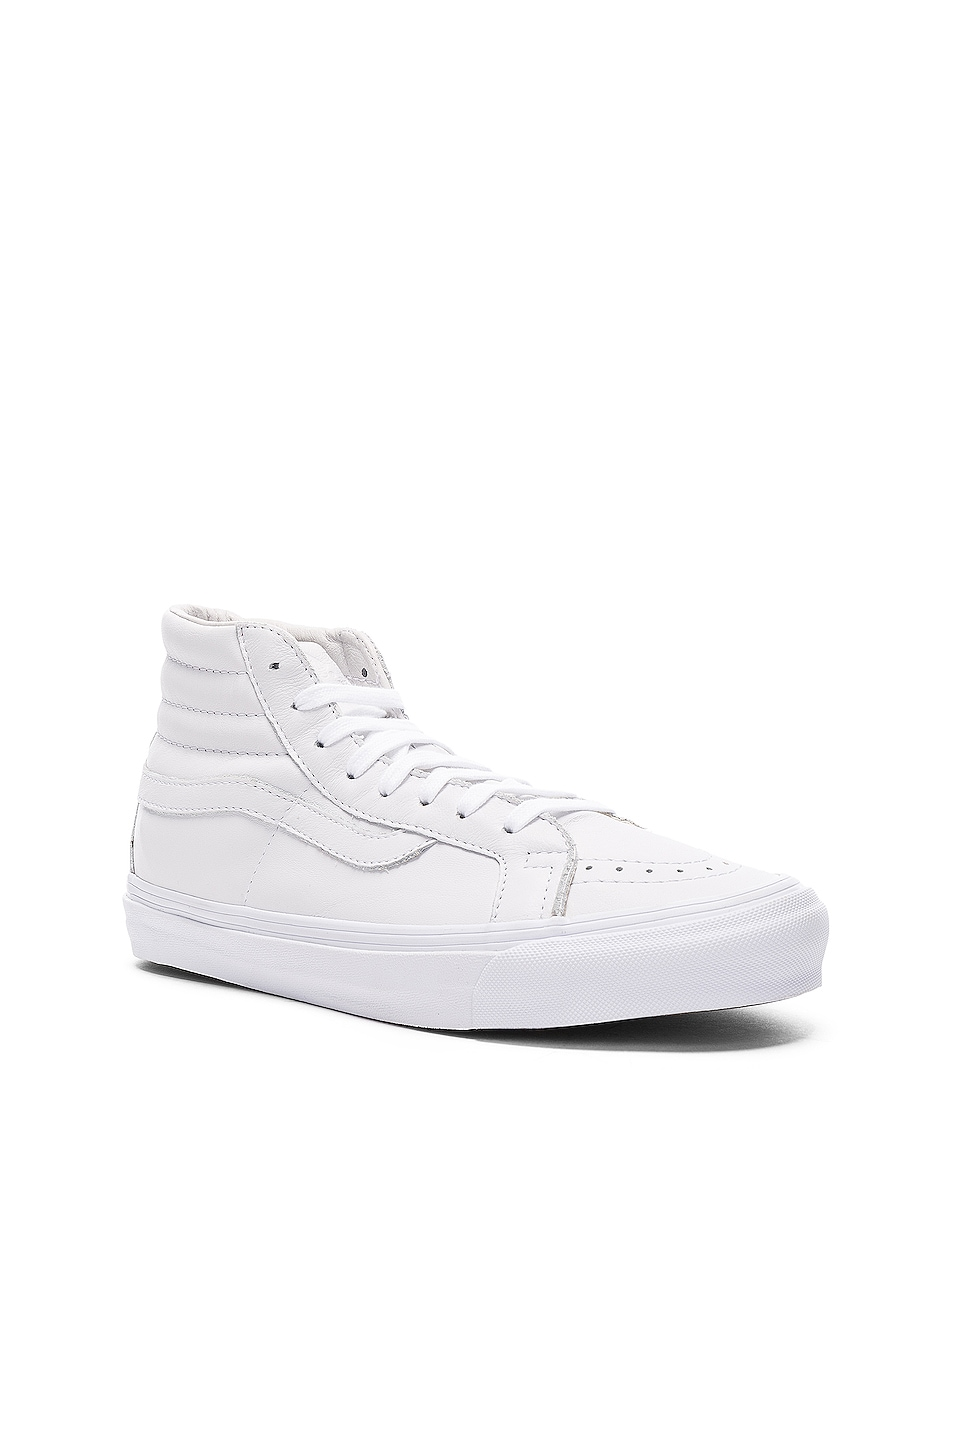 Image 2 of Vans Vault Leather OG SK8-HI LX in White